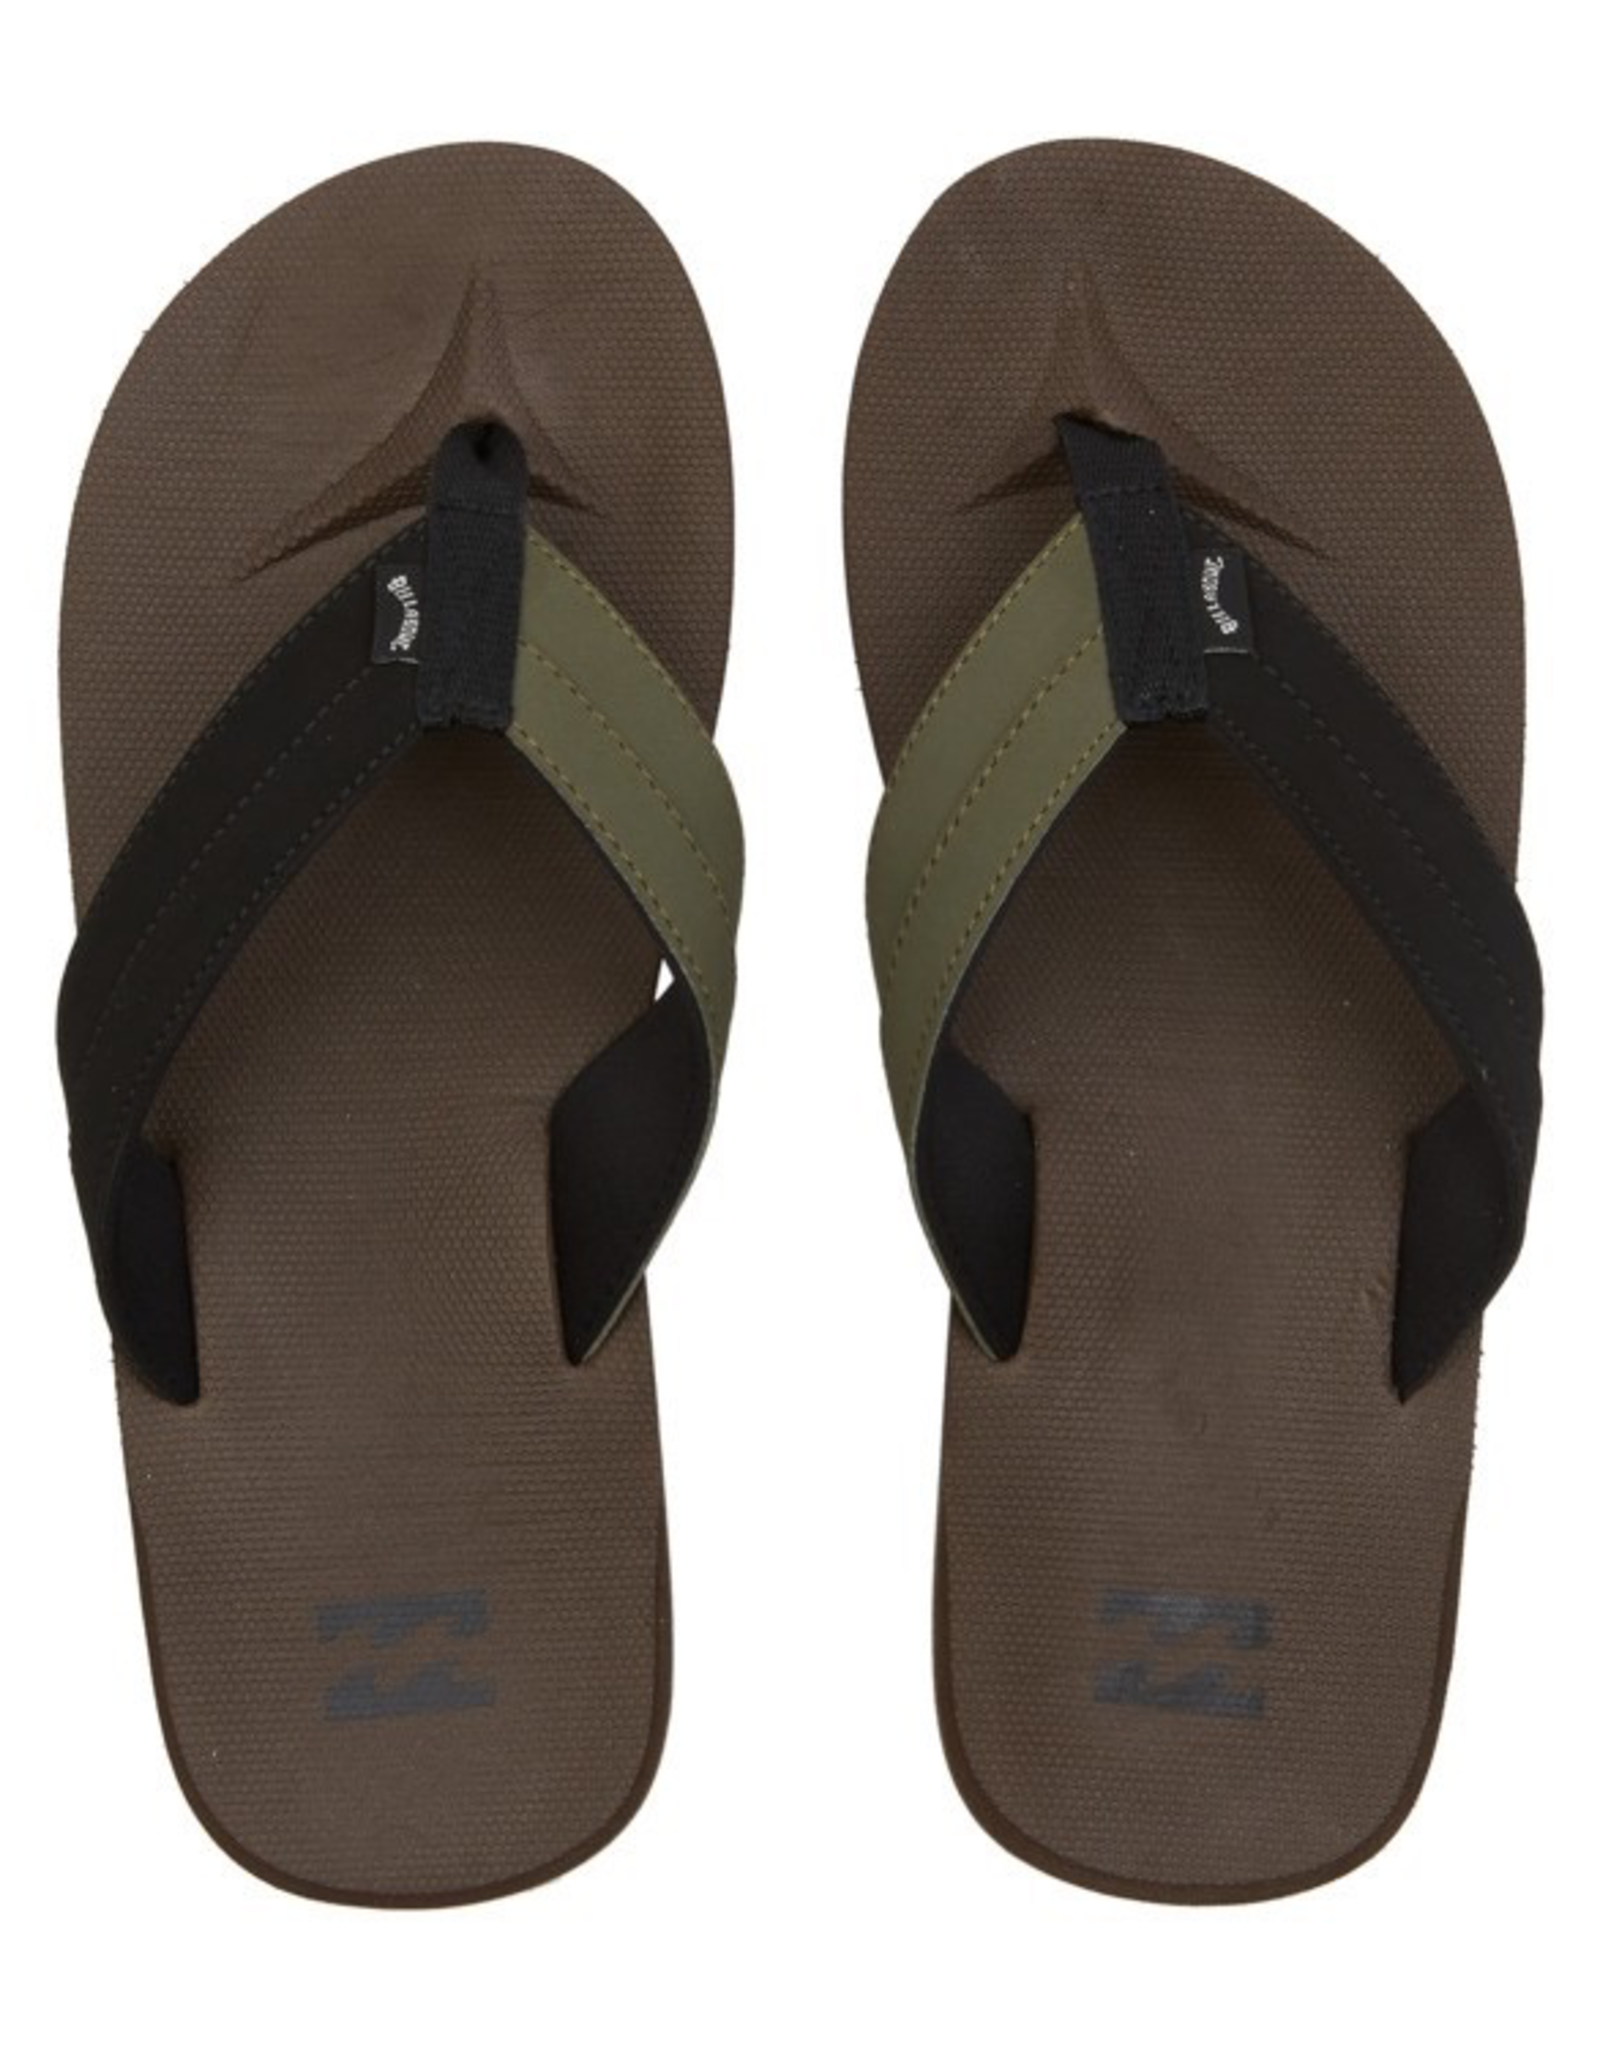 All Day Impact Sandals